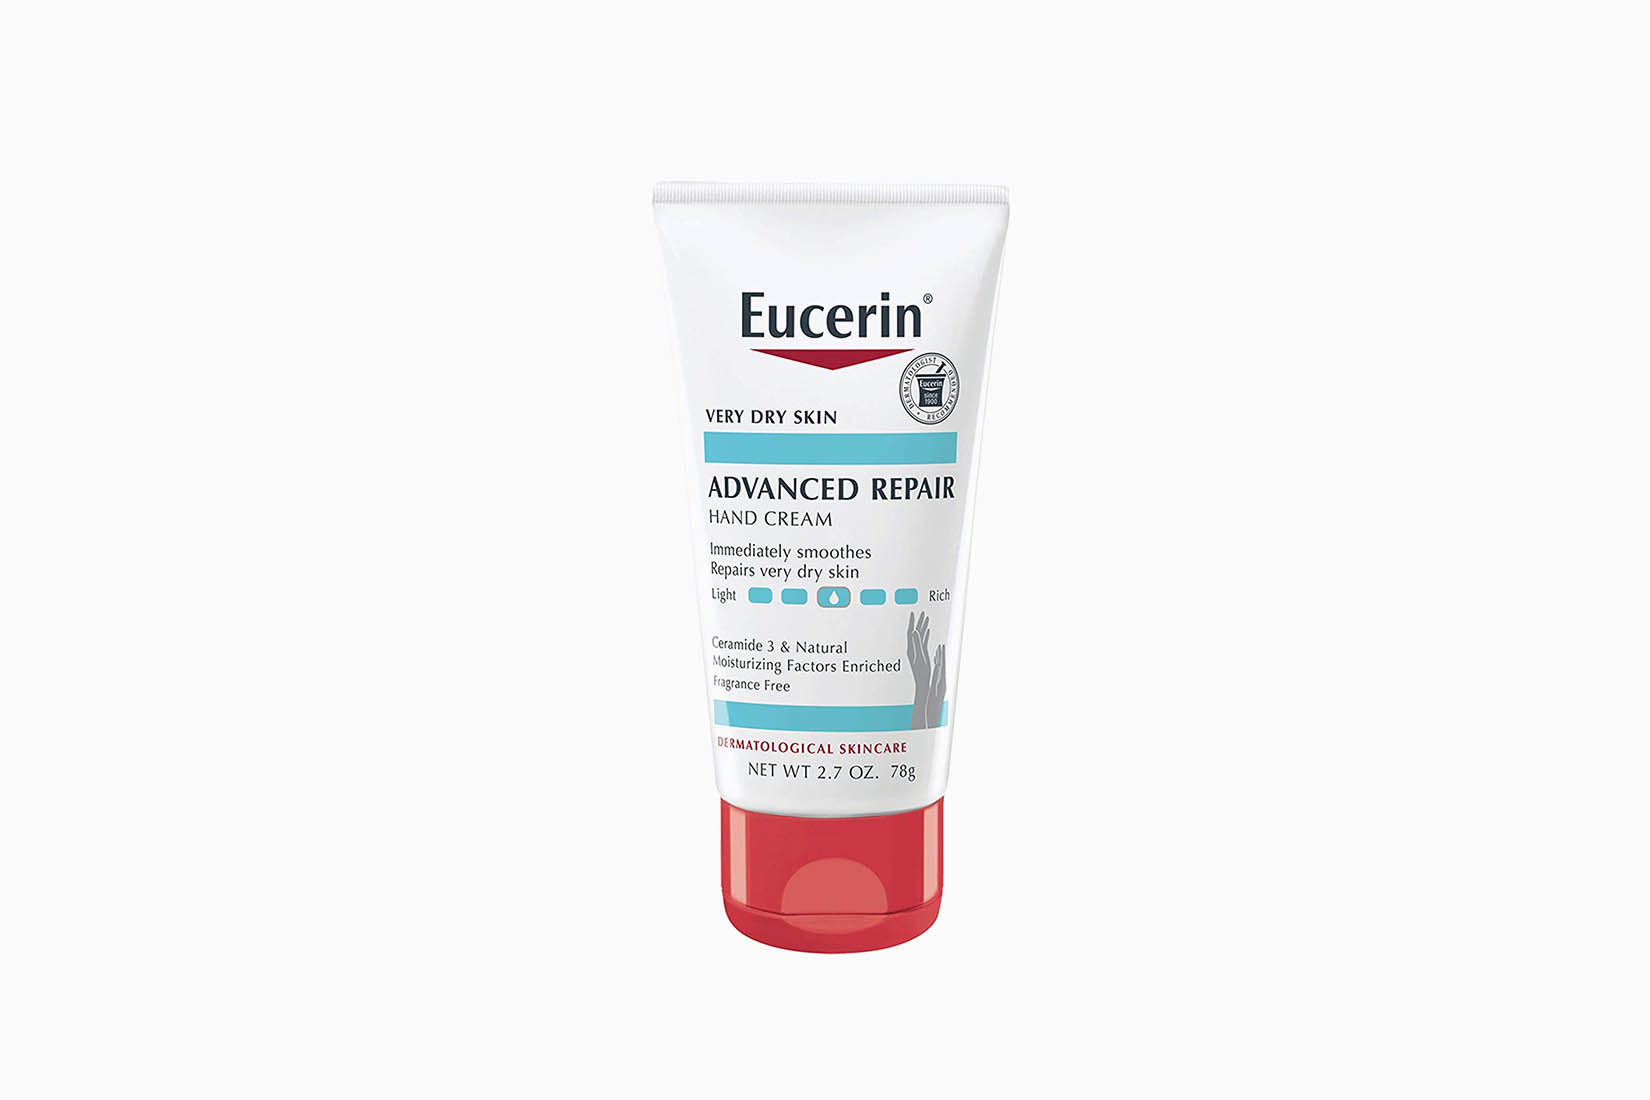 Best Hand Cream Eucerin Review - Luxe Digital